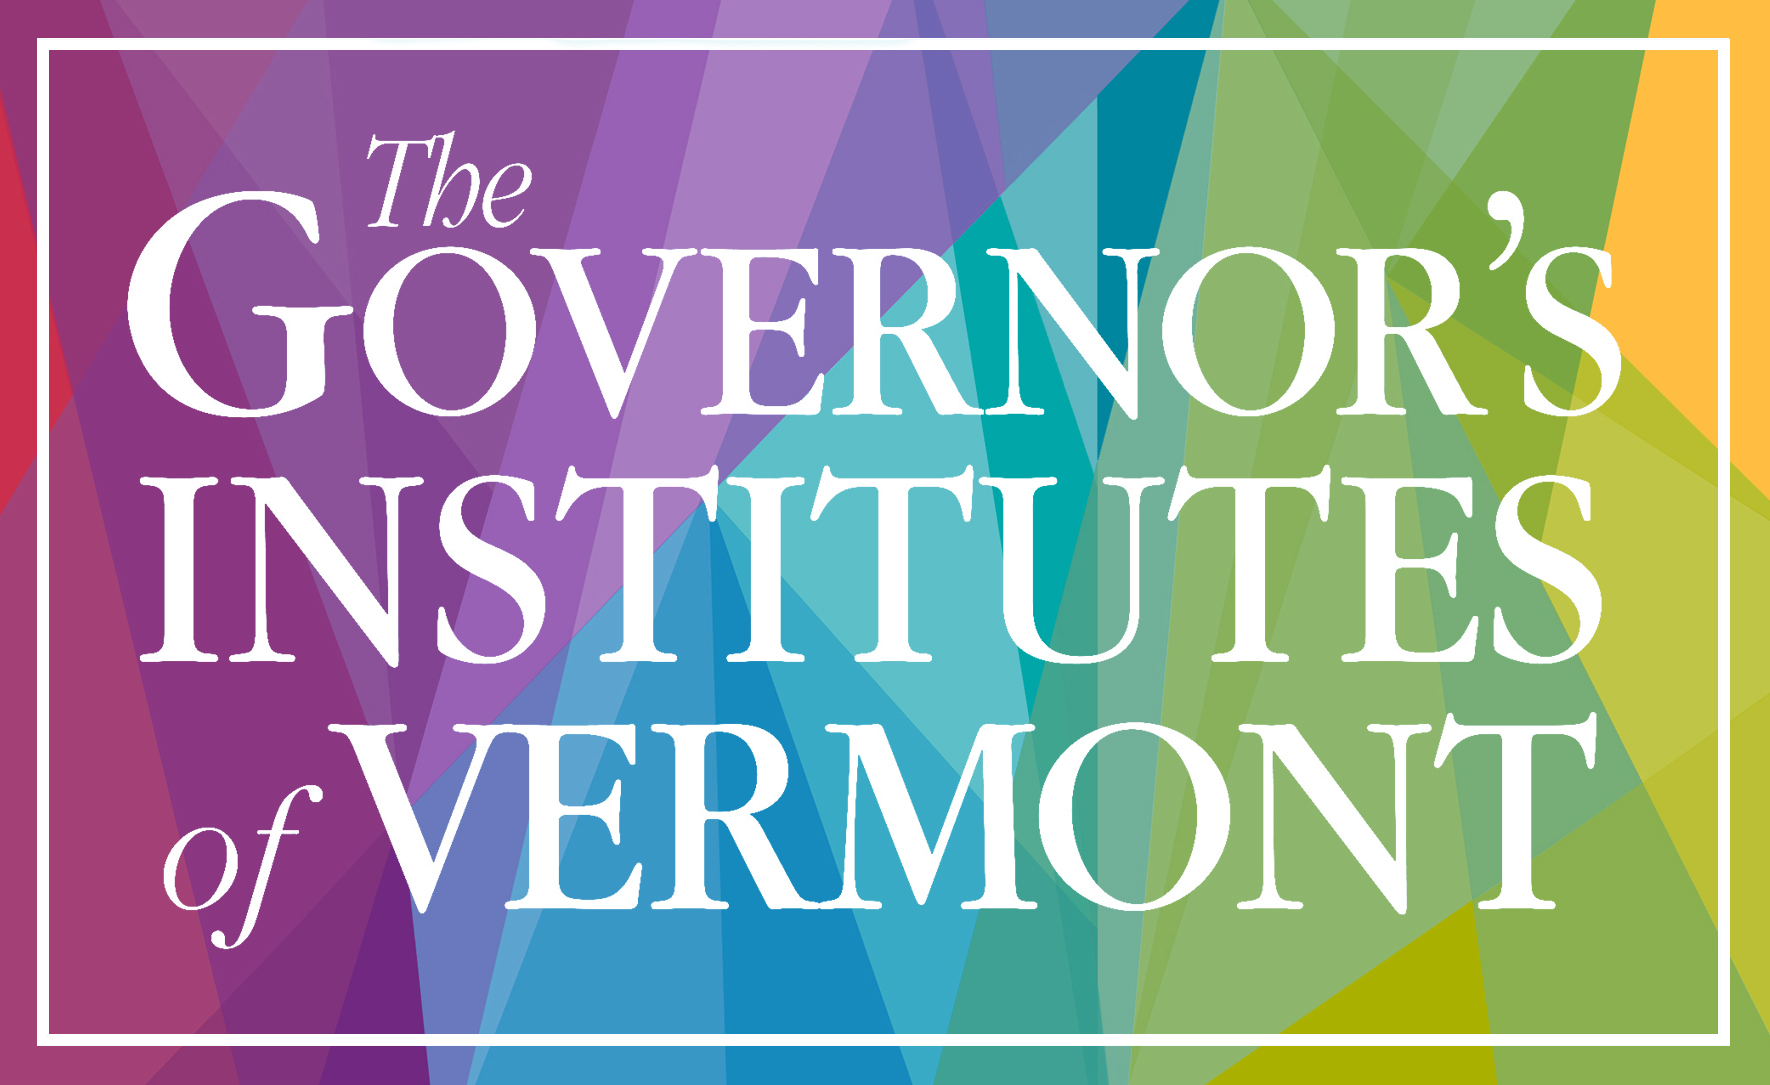 The Governor's Institutes of Vermont